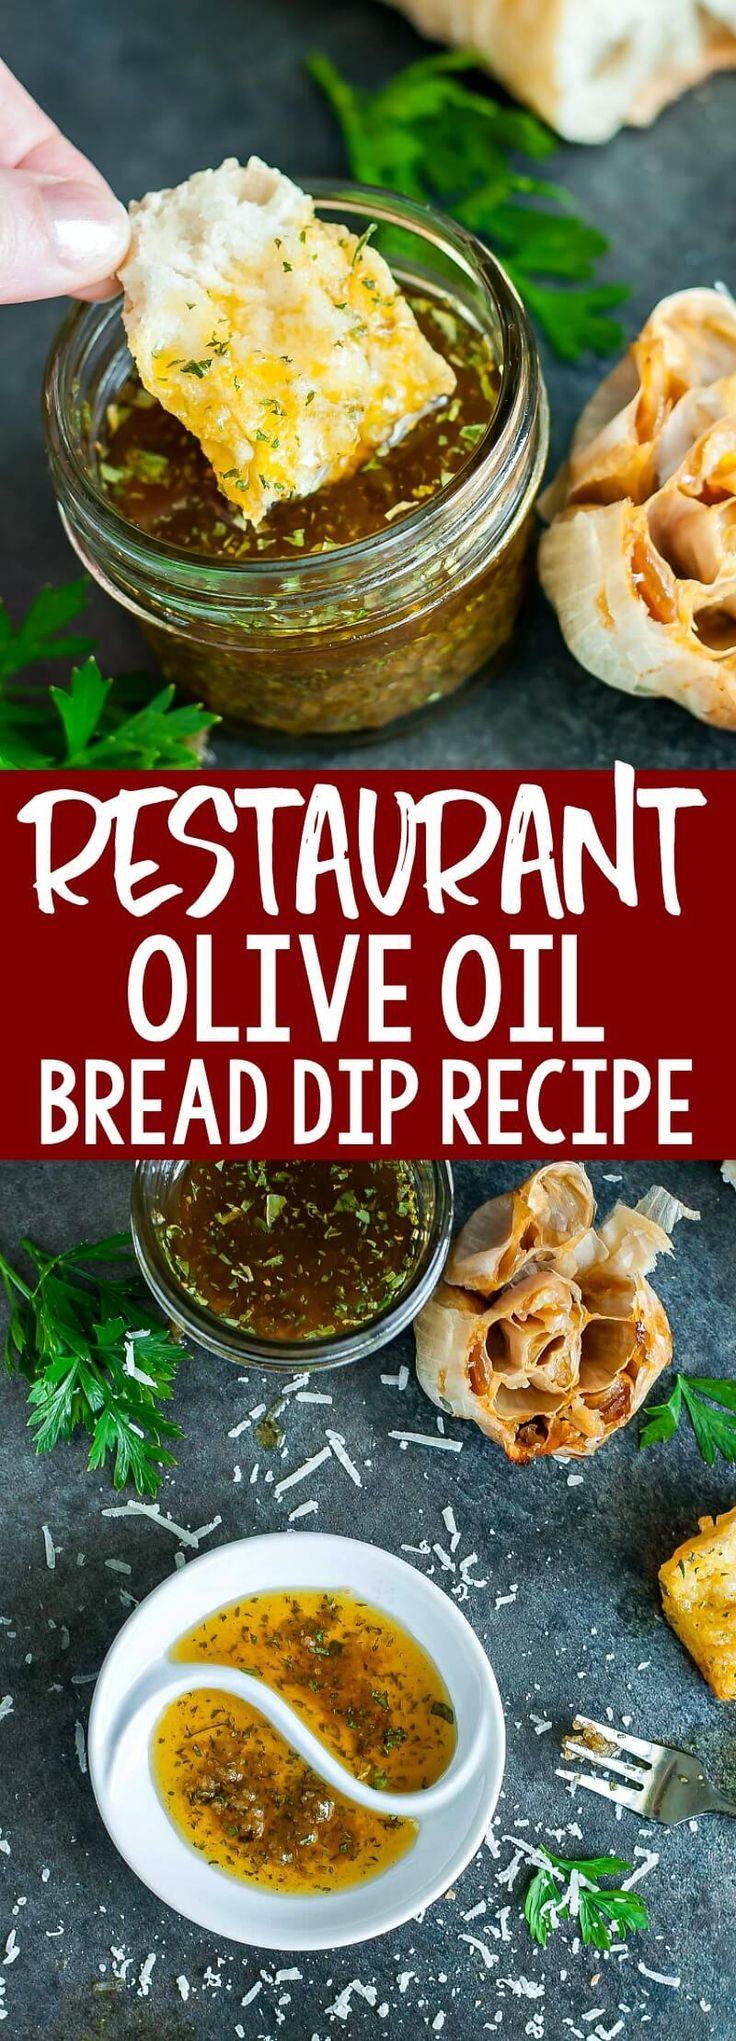 Restaurant-Style Olive Oil and Herb Bread Dip – Our favorite appetizer!